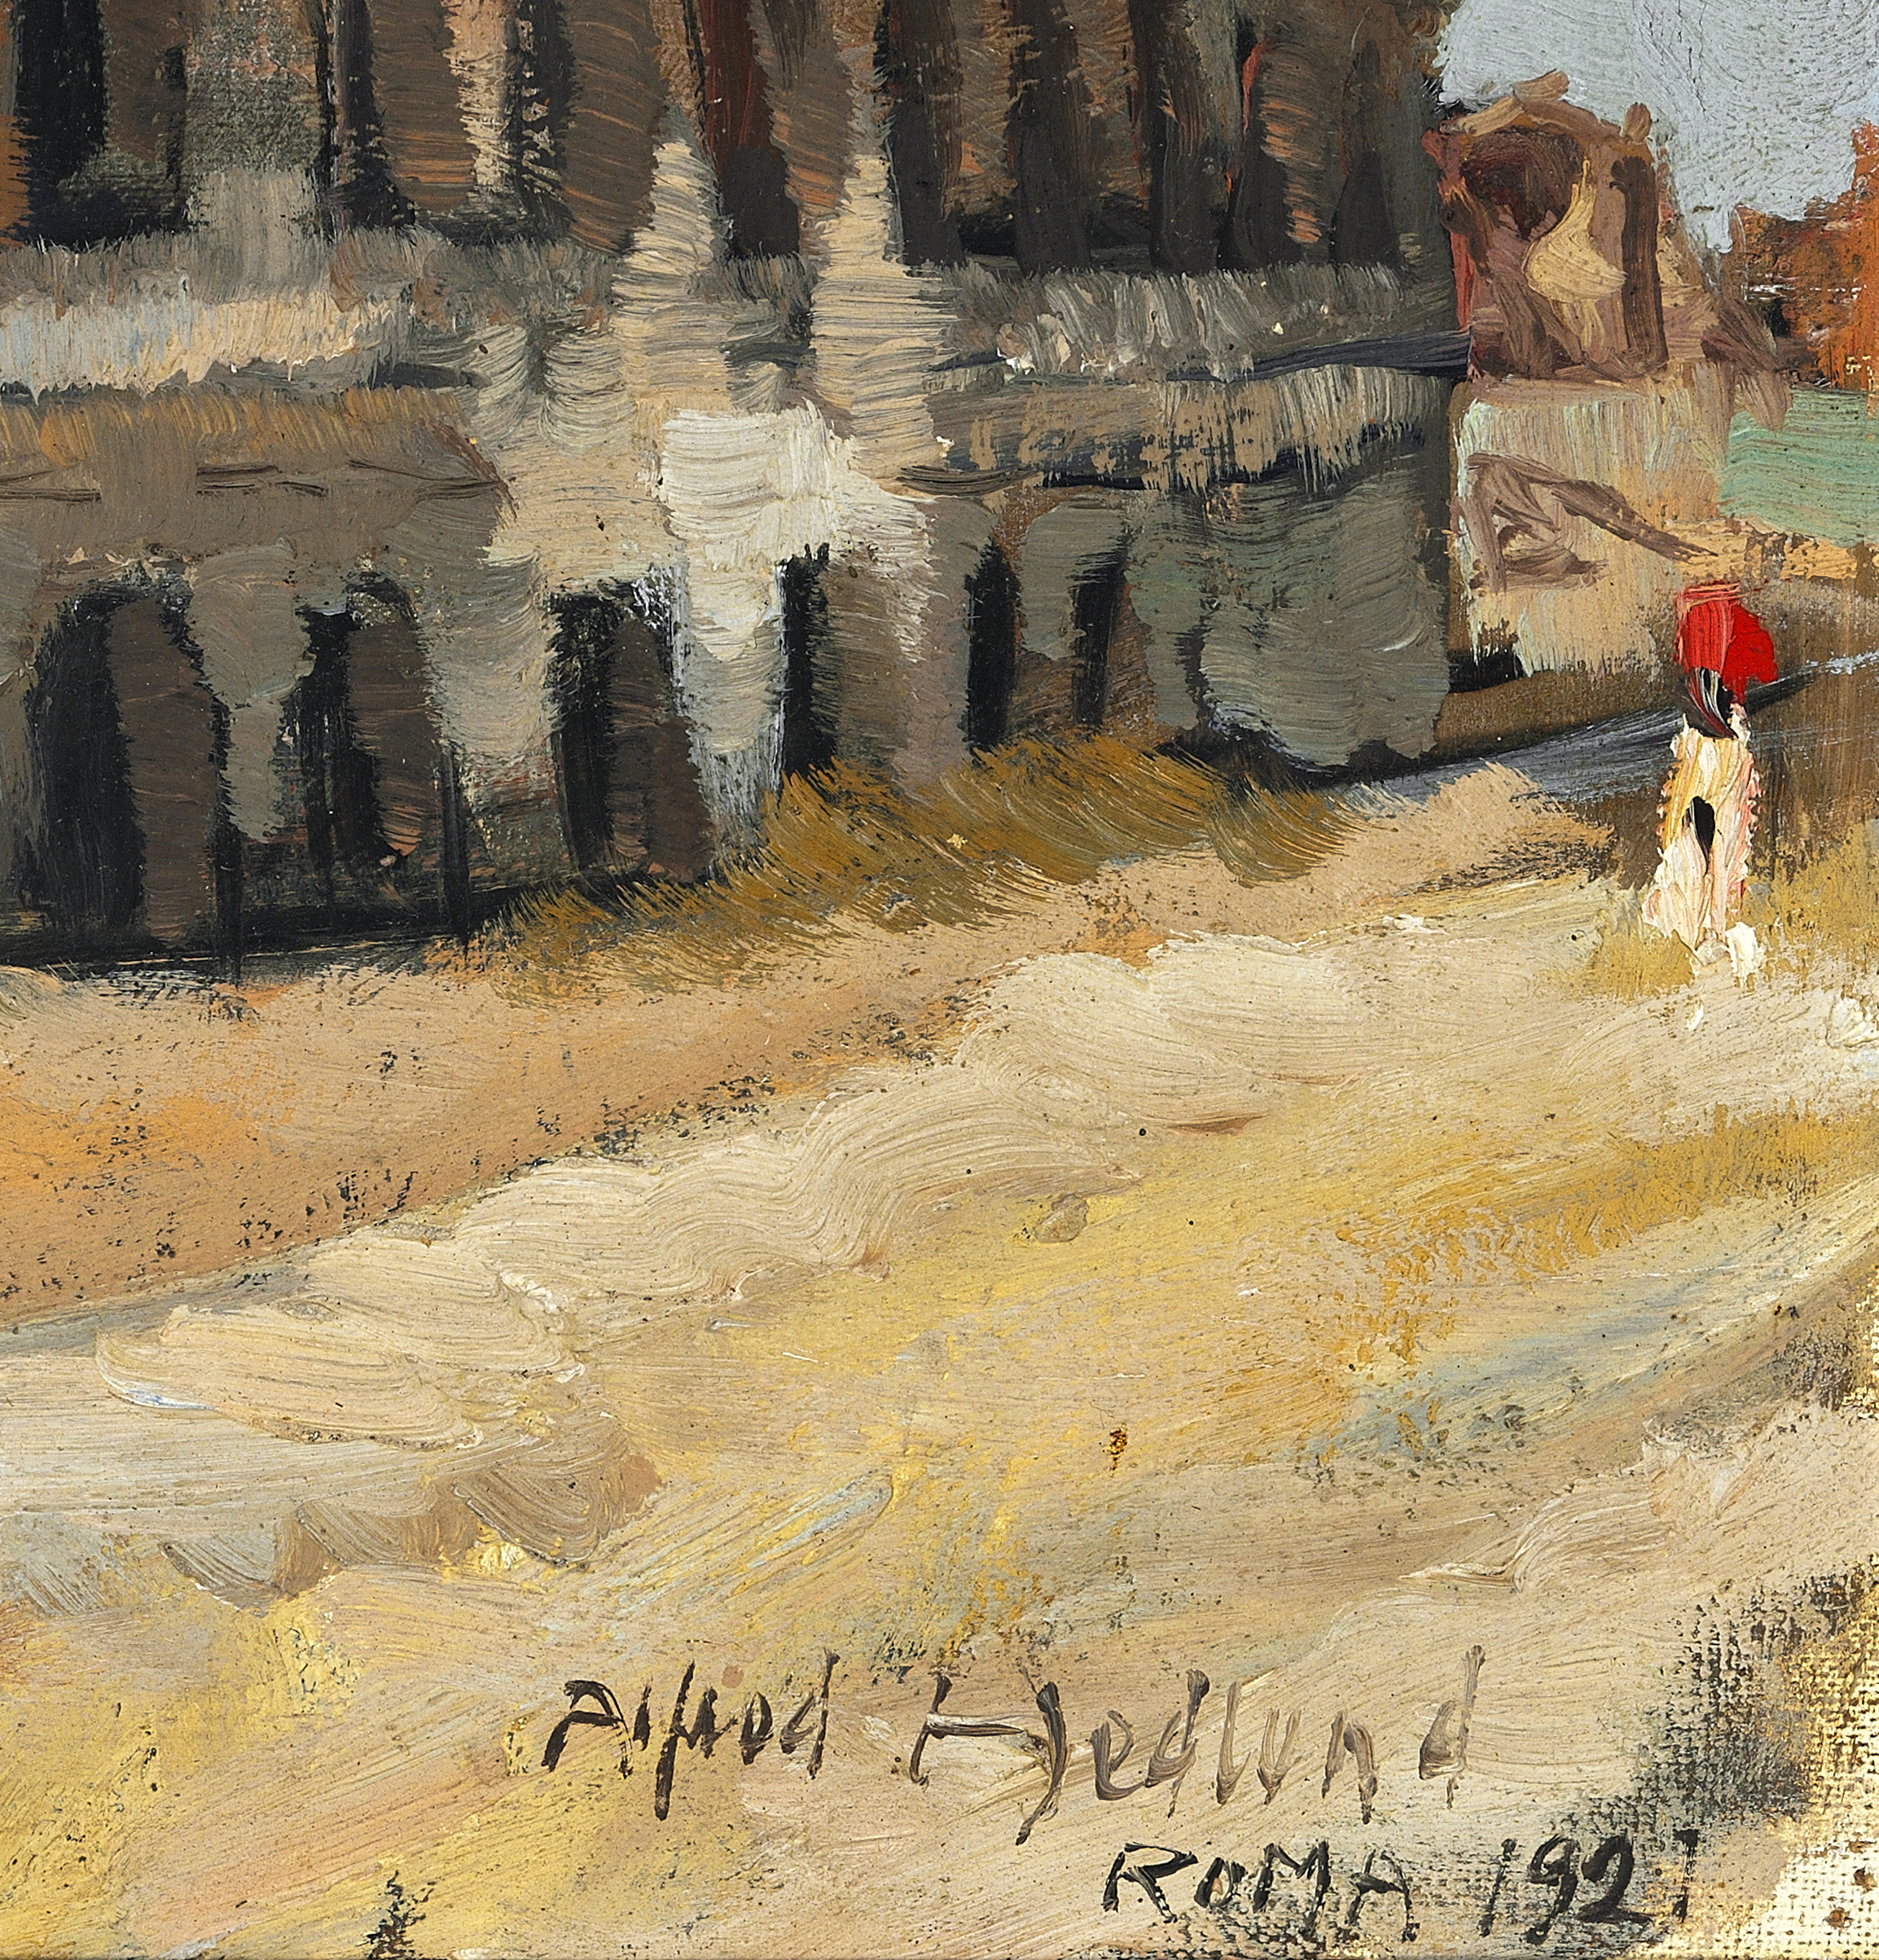 _ Alfred Hedlund Colosseum in Rome – James Bauerle